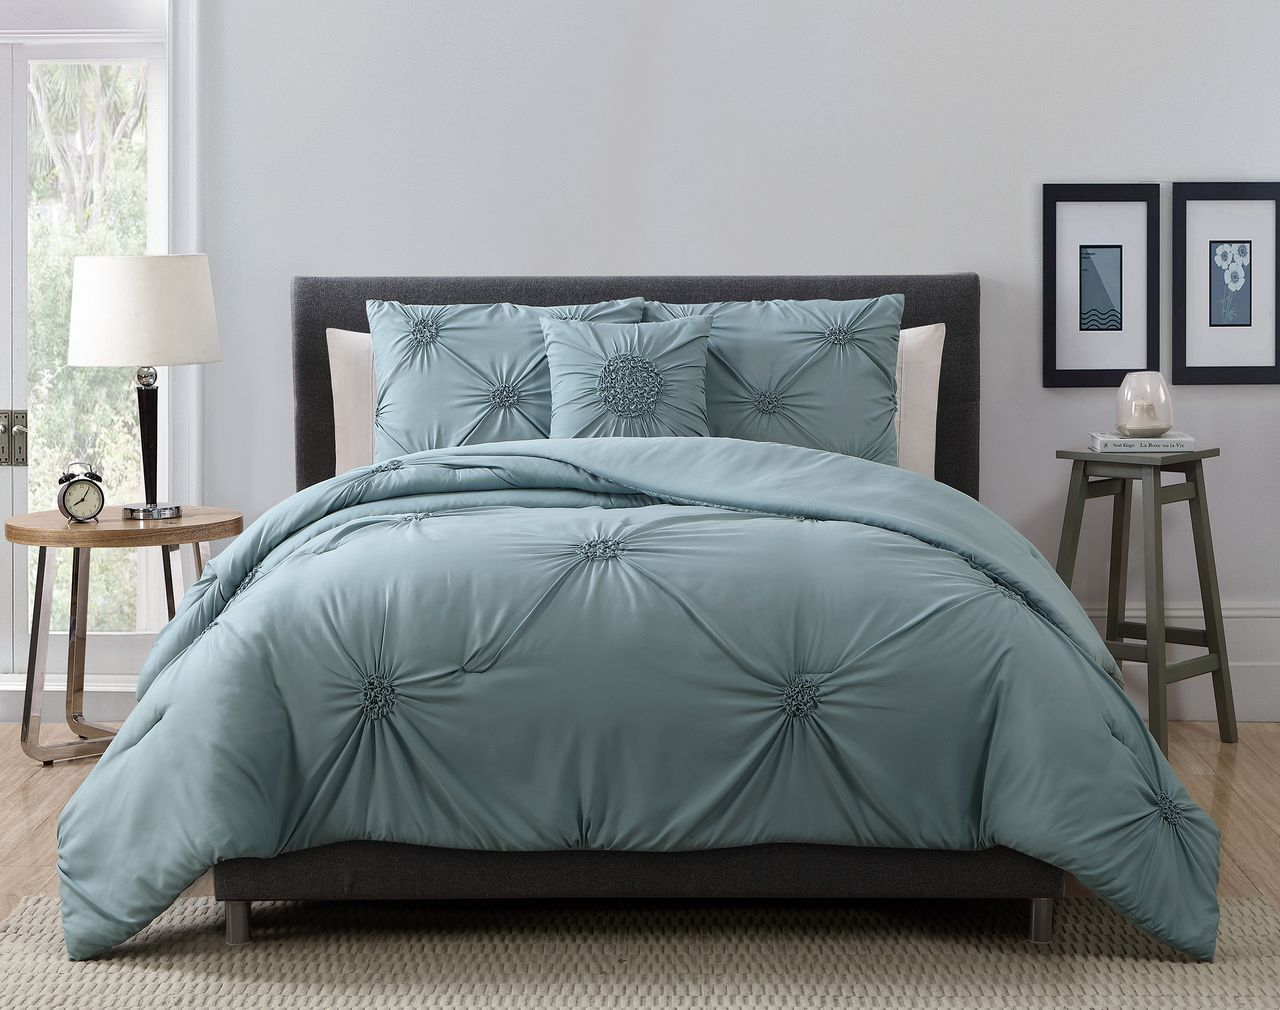 4 Piece Paige Mineral Blue Comforter Set Grey Comforter Sets Blue Comforter Sets Bed Linens Luxury